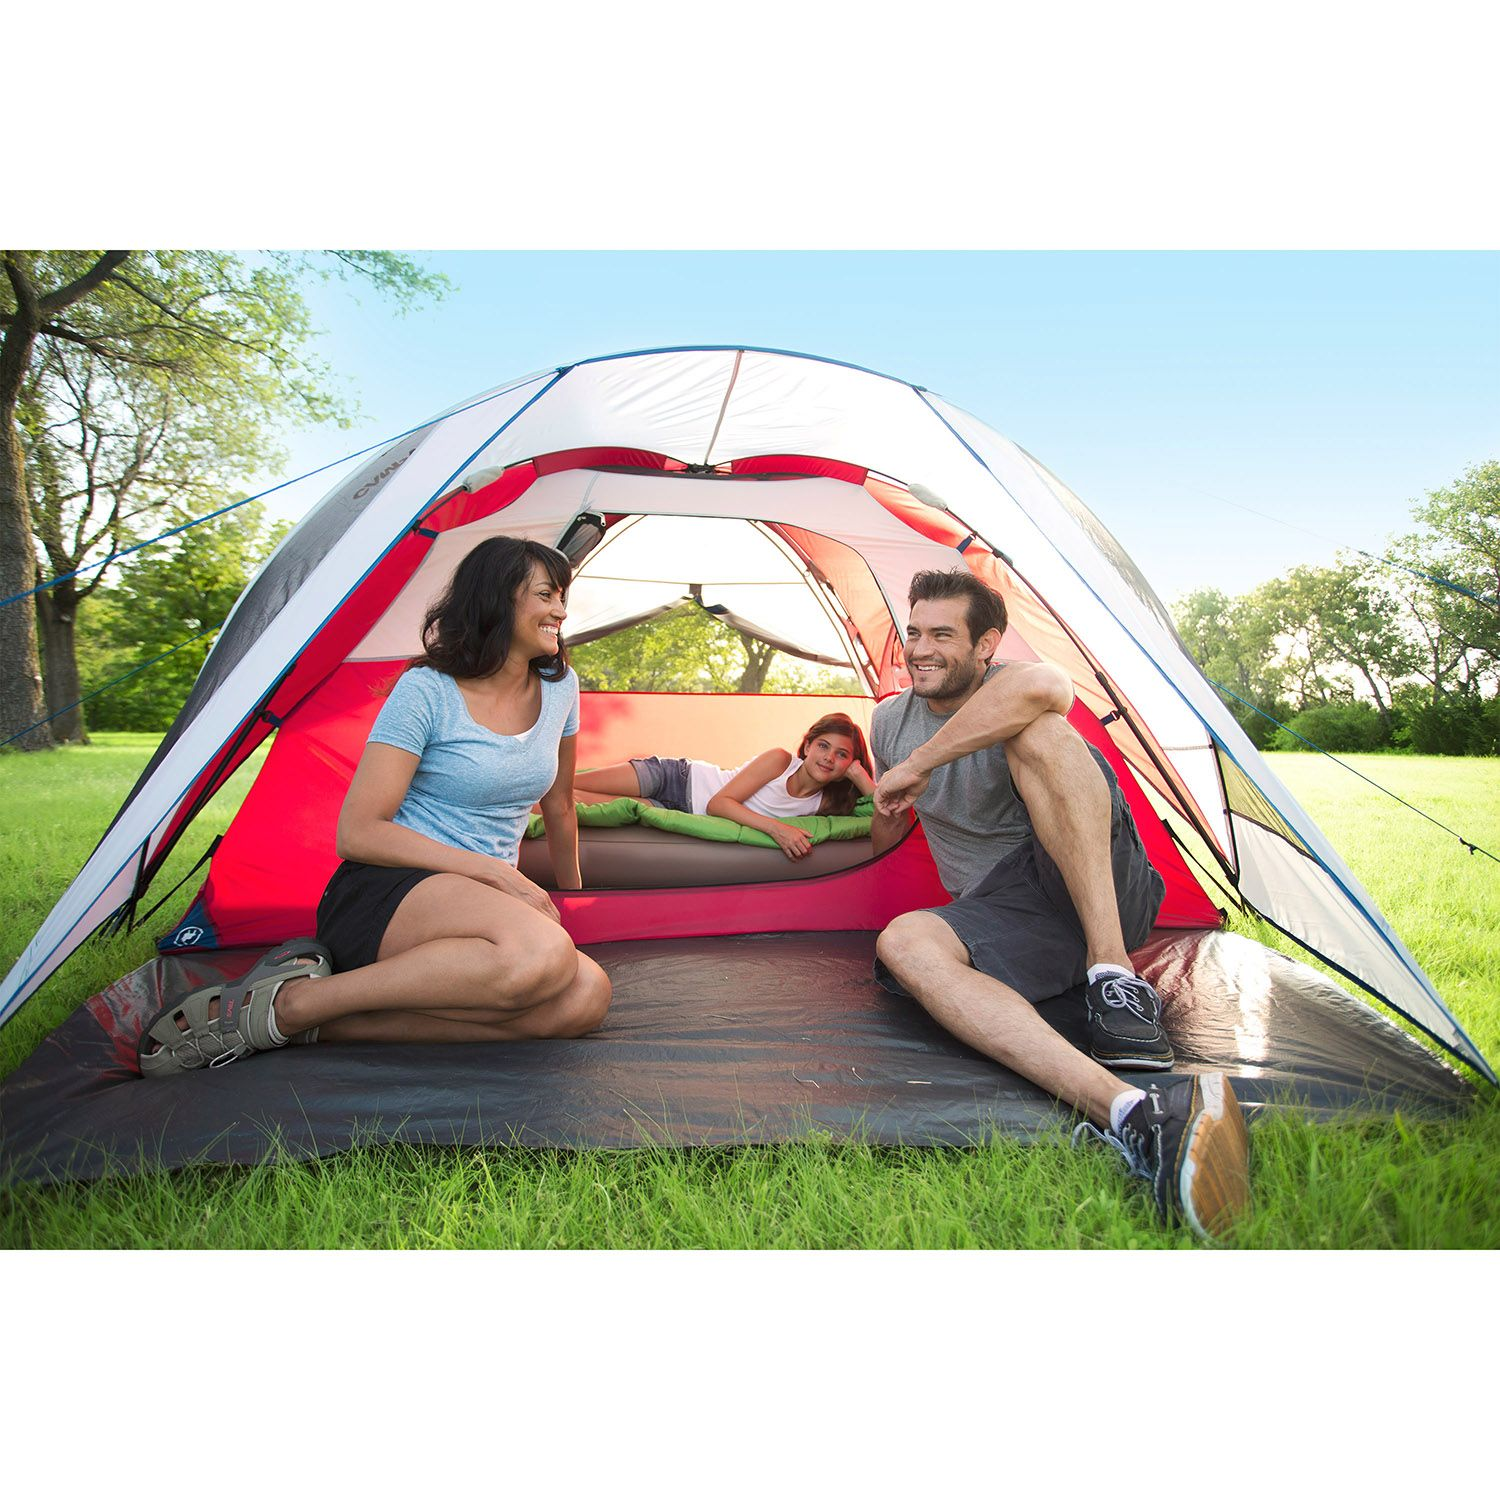 sc 1 st  Walmart & Campvalley 4-Person Instant Dome Tent Red - Walmart.com